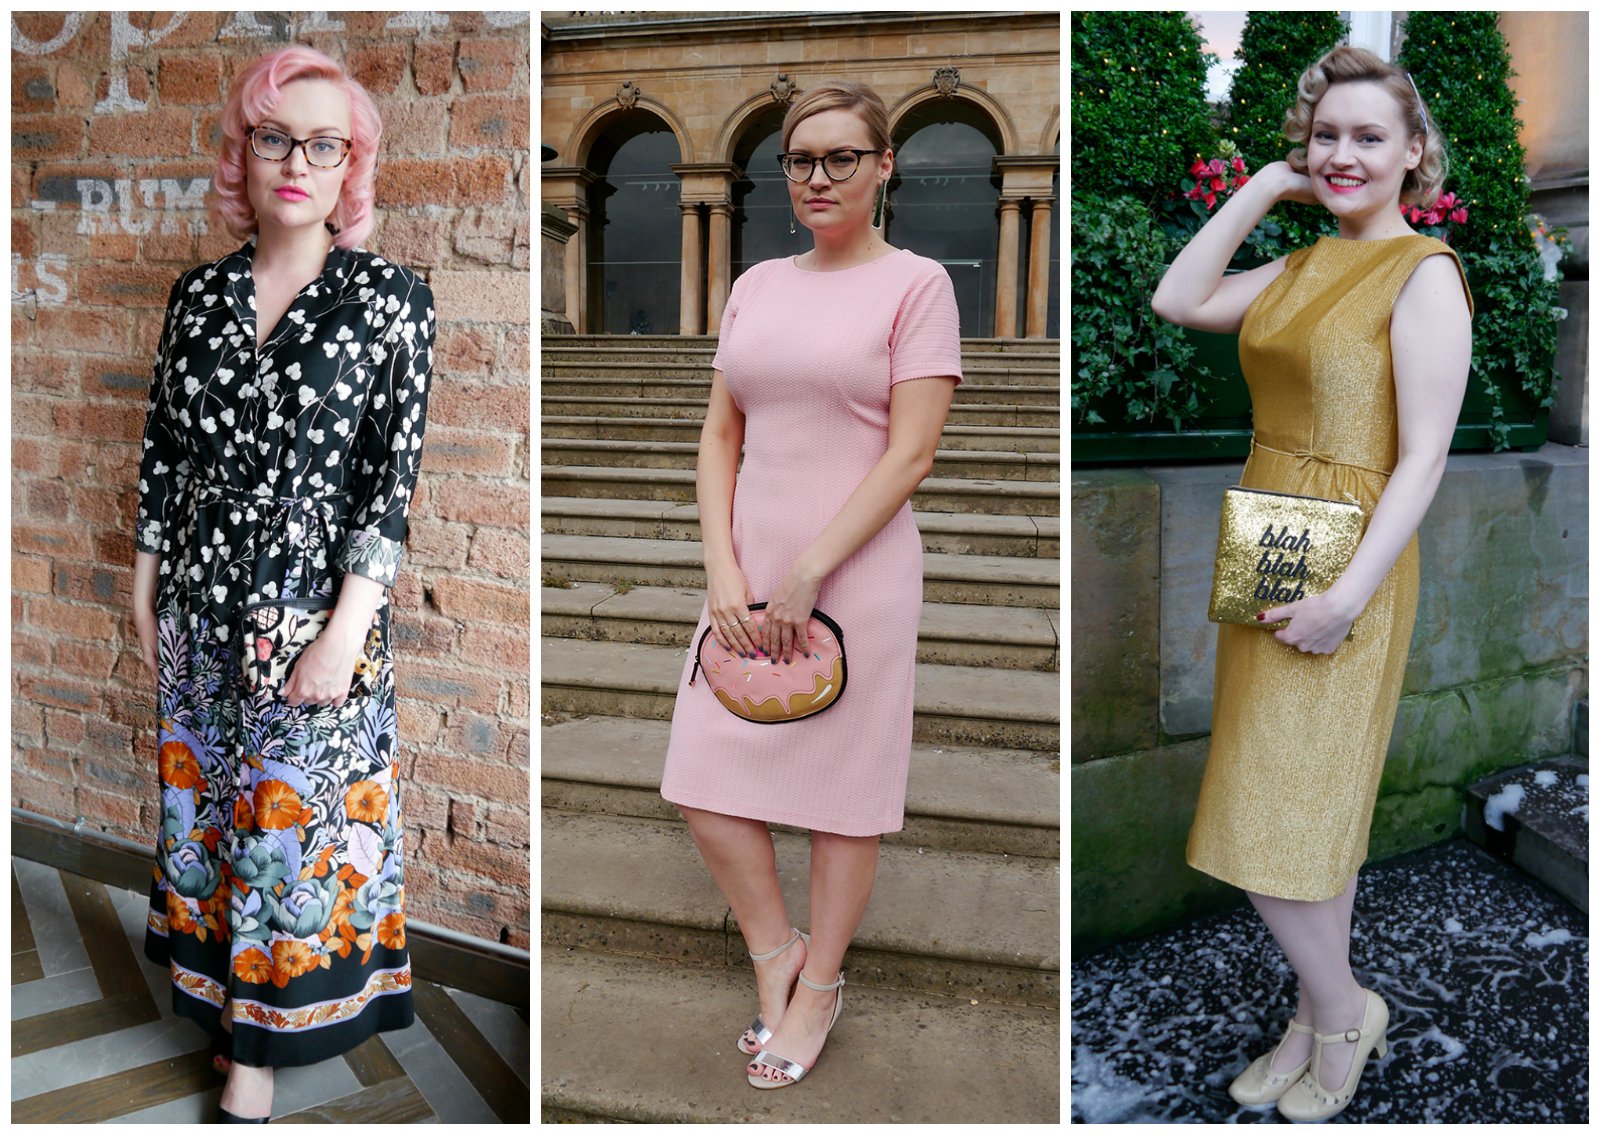 outfit round up, 2016 blogger outfit, blogger style, wardrobe conversations, Scottish blogger, UK style blogger, Edinburgh blogger, Vintage style, vintage dresses, vintage maxi dress, classic powder pink dress, gold party dress, novelty bag, clutch bags, SoS15, glitter clutch bag, vintage hair style, pink hair